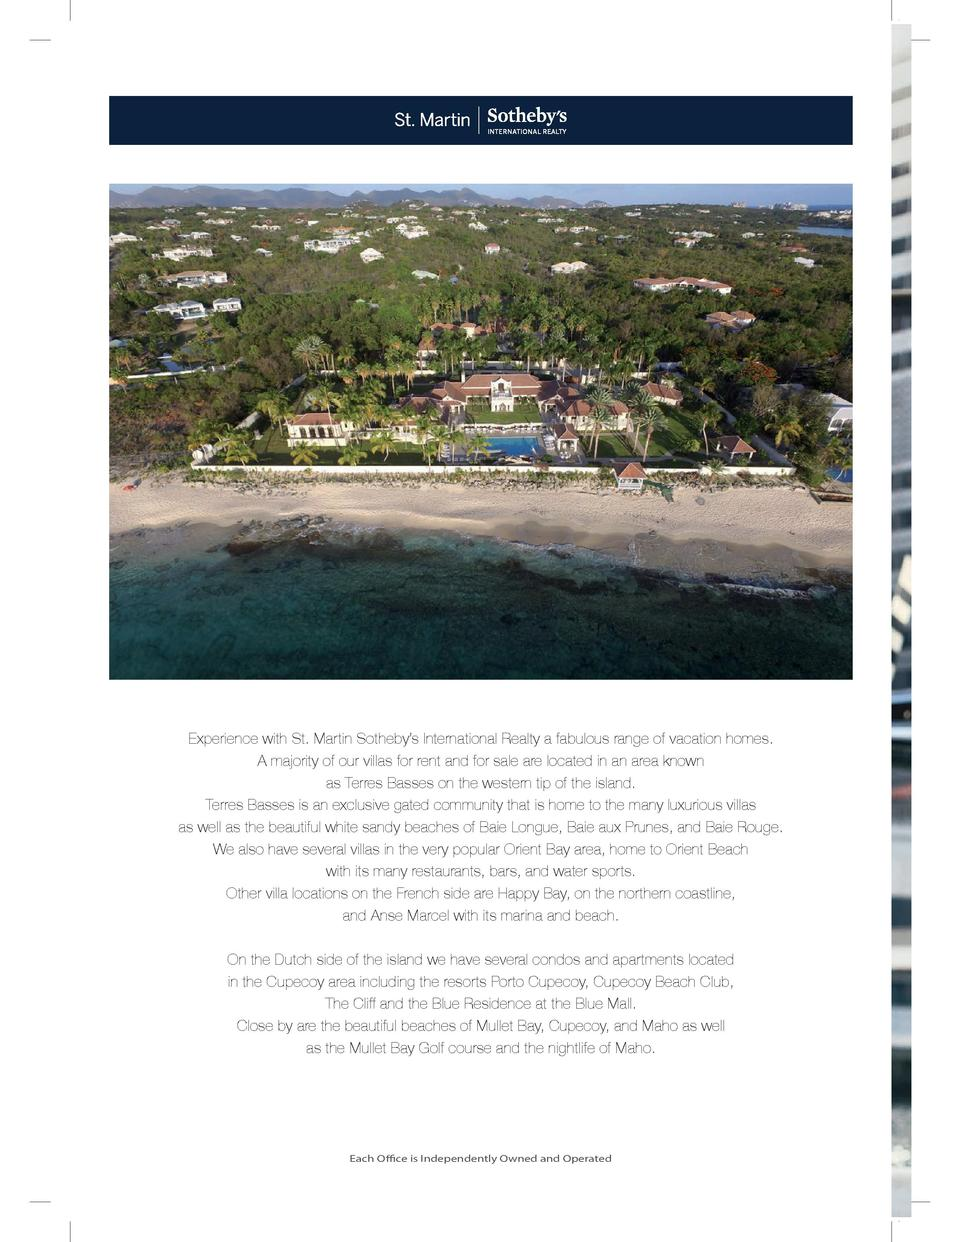 P3-PoloRalp  Experience with St. Martin Sotheby   s International Realty a fabulous range of vacation homes. A majority of...